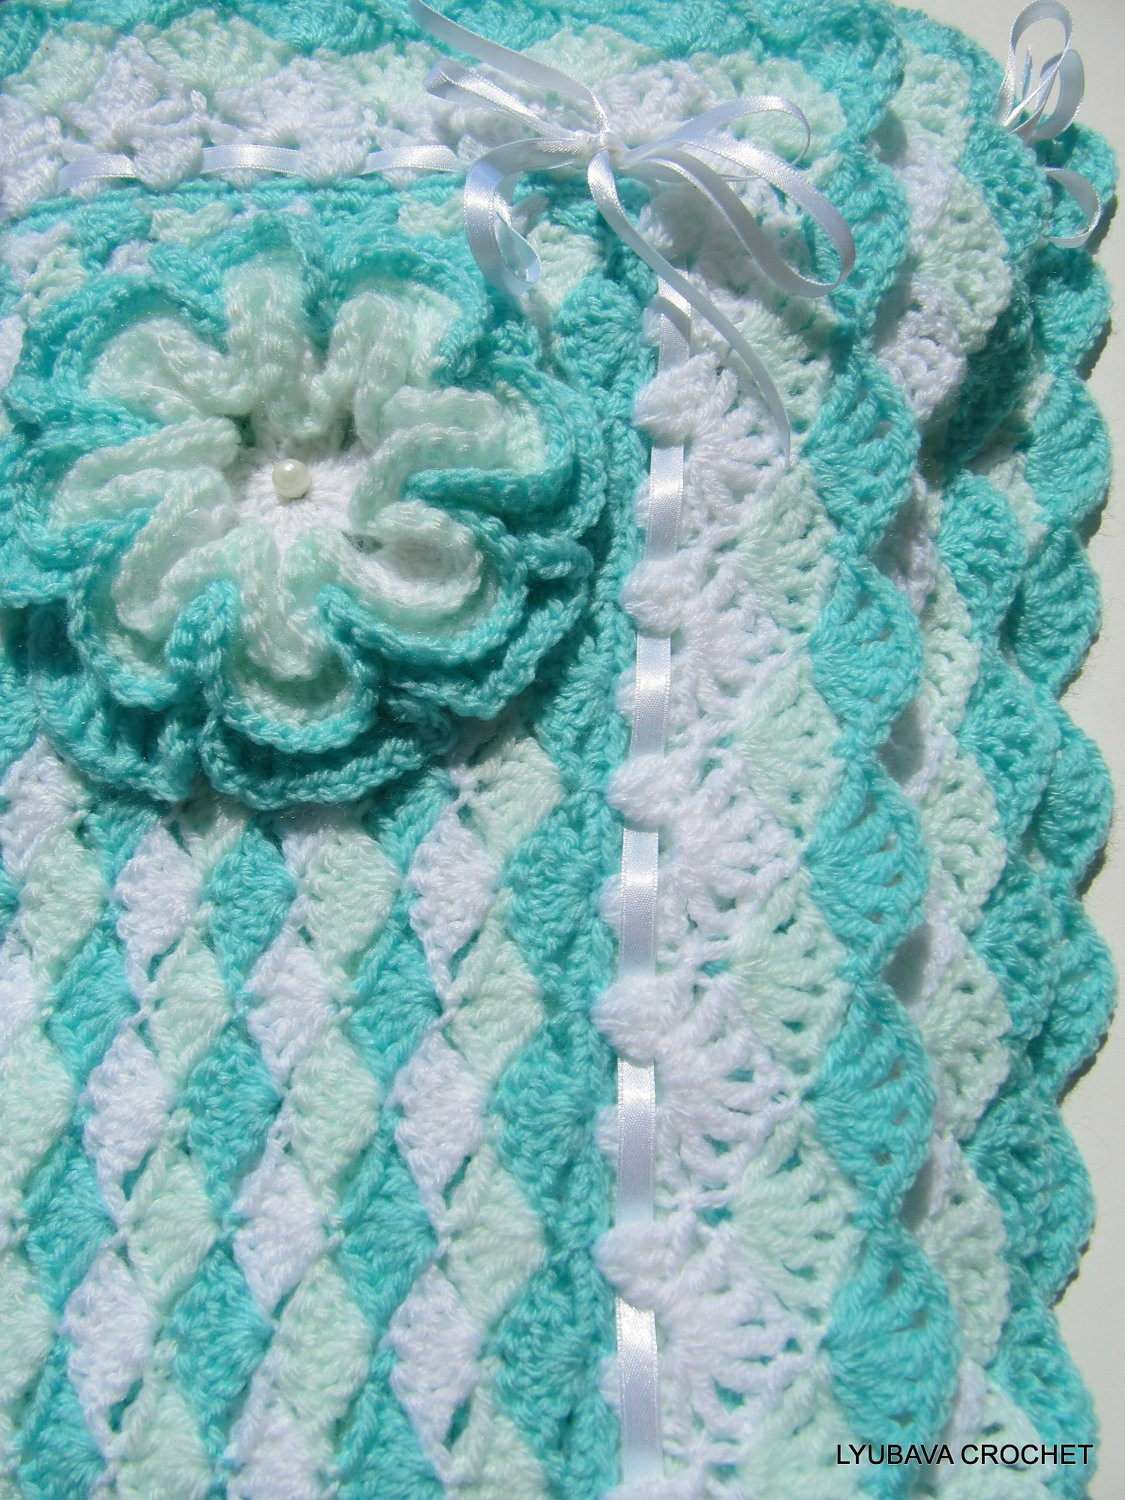 Crochet toddler Blanket Unique Crochet Pattern Baby Blanket Turquoise with by Lyubavacrochet Of Amazing 41 Ideas Crochet toddler Blanket